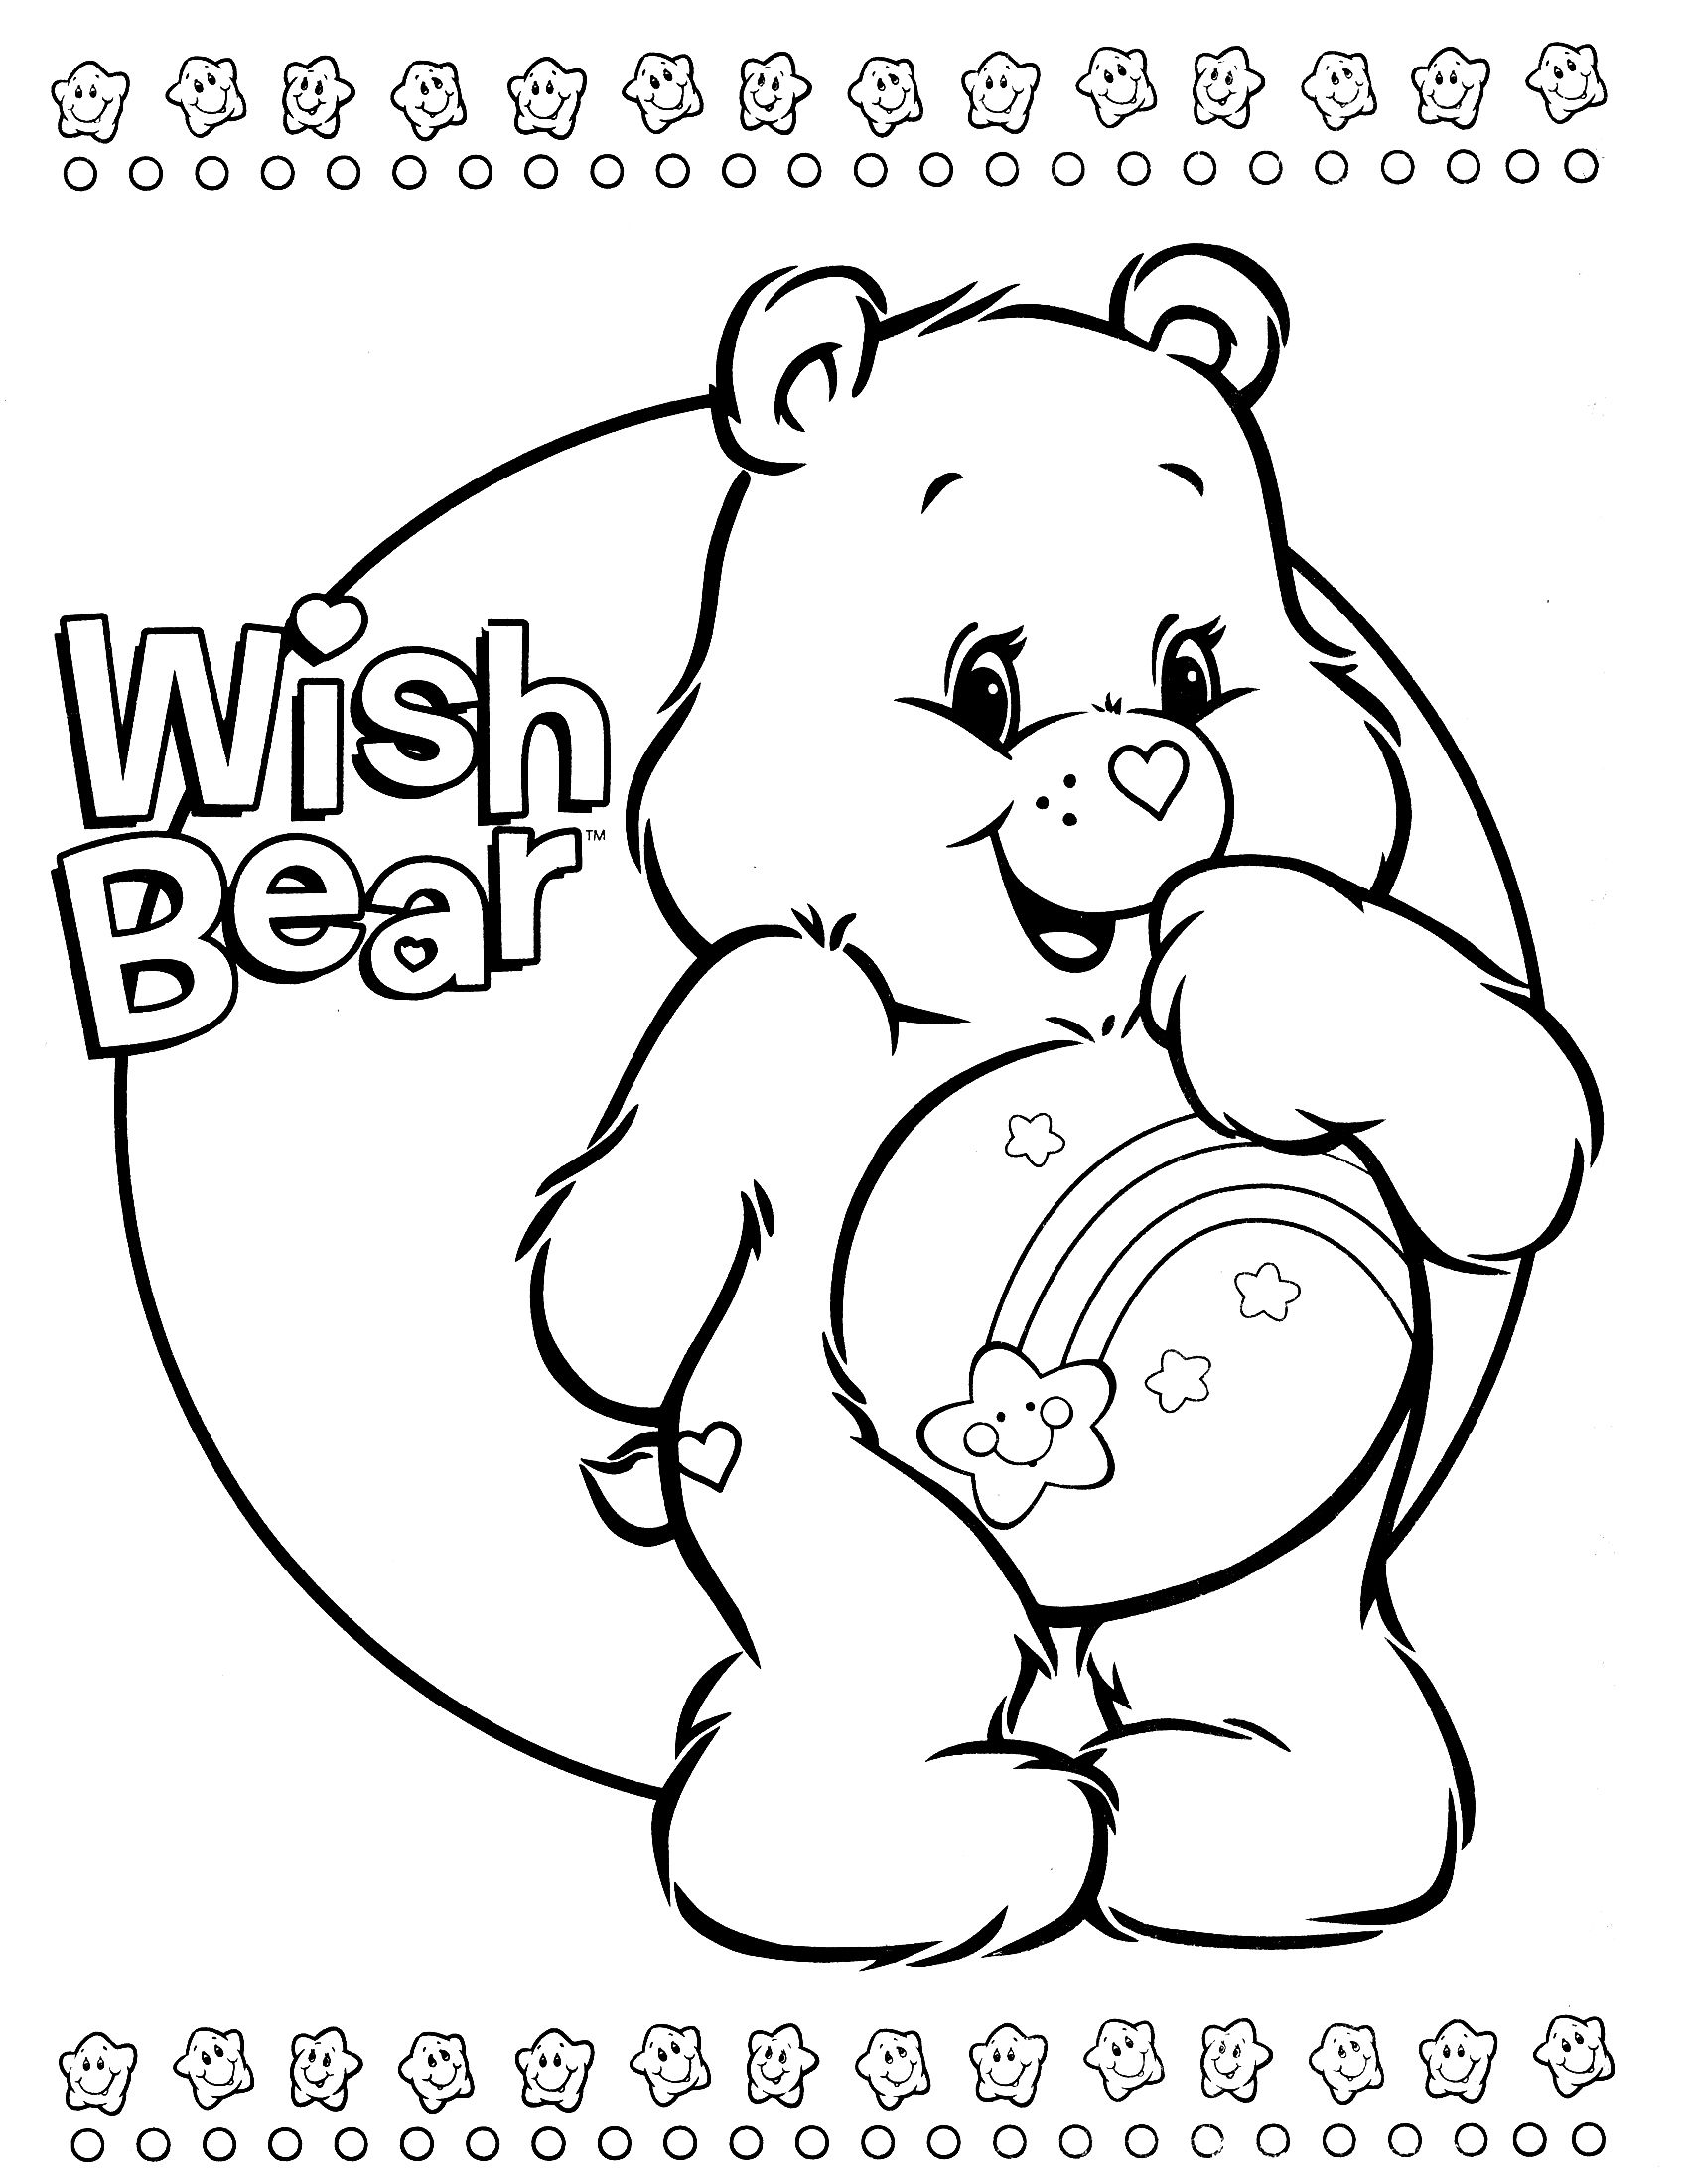 Care Bears Coloring Page Bear Coloring Pages Teddy Bear Coloring Pages Disney Coloring Pages